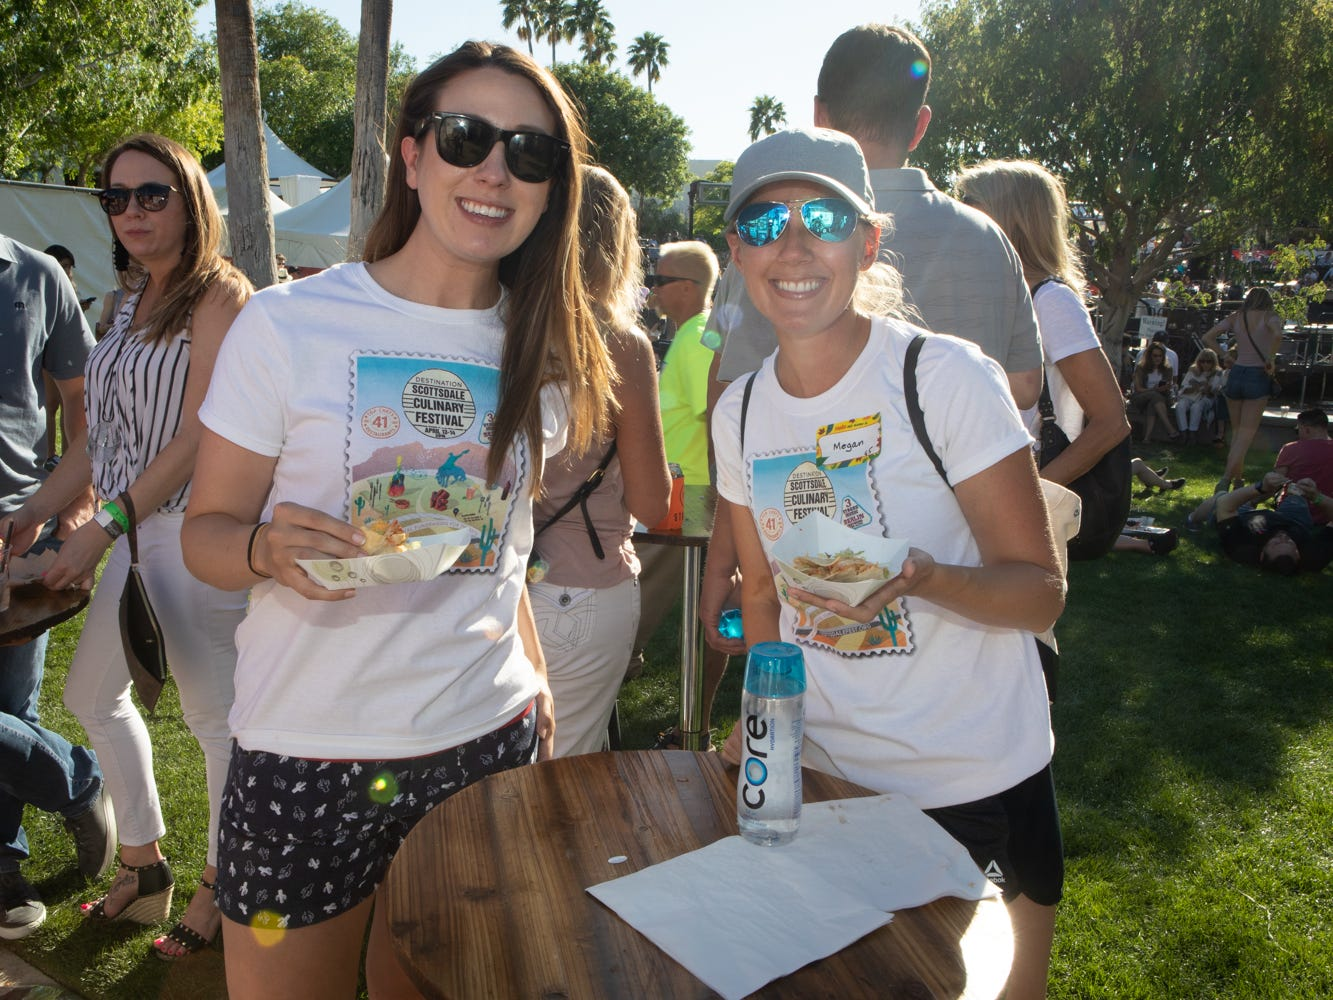 These ladies soaked up the sun at the Scottsdale Culinary Festival on April 13, 2019.